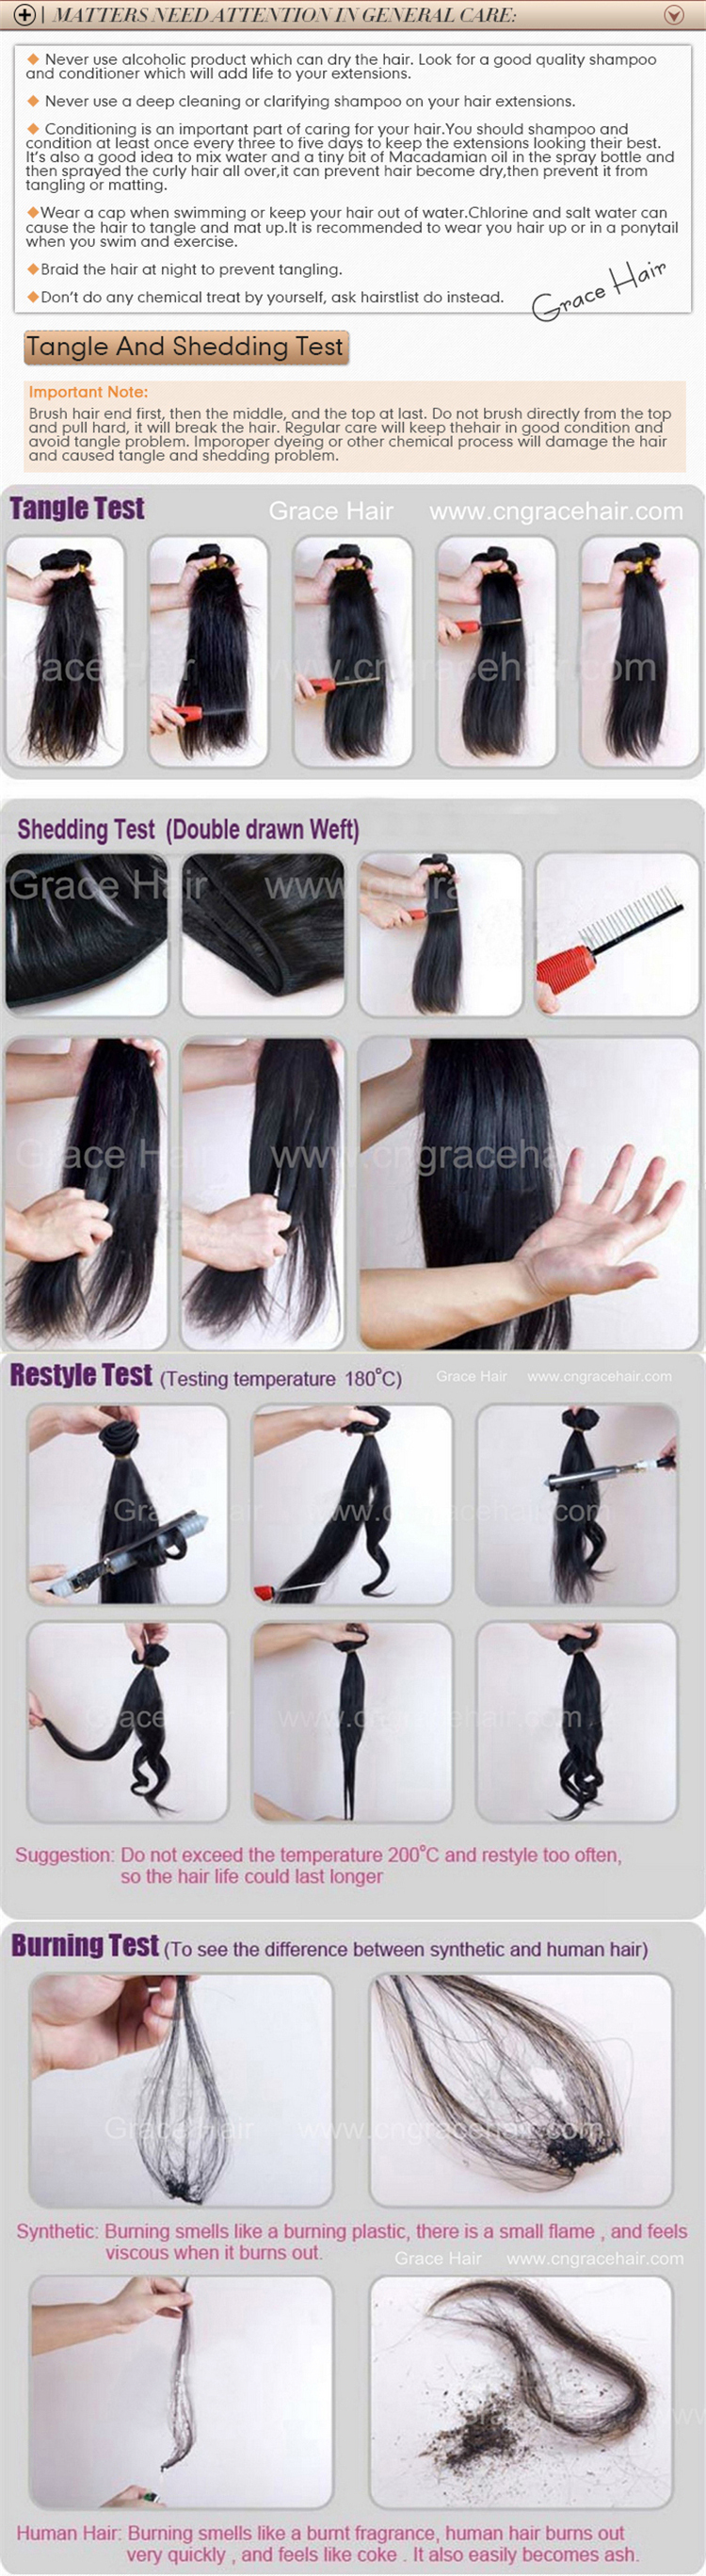 12 14 16 18 virgin hair made in dubai remy human hair weft